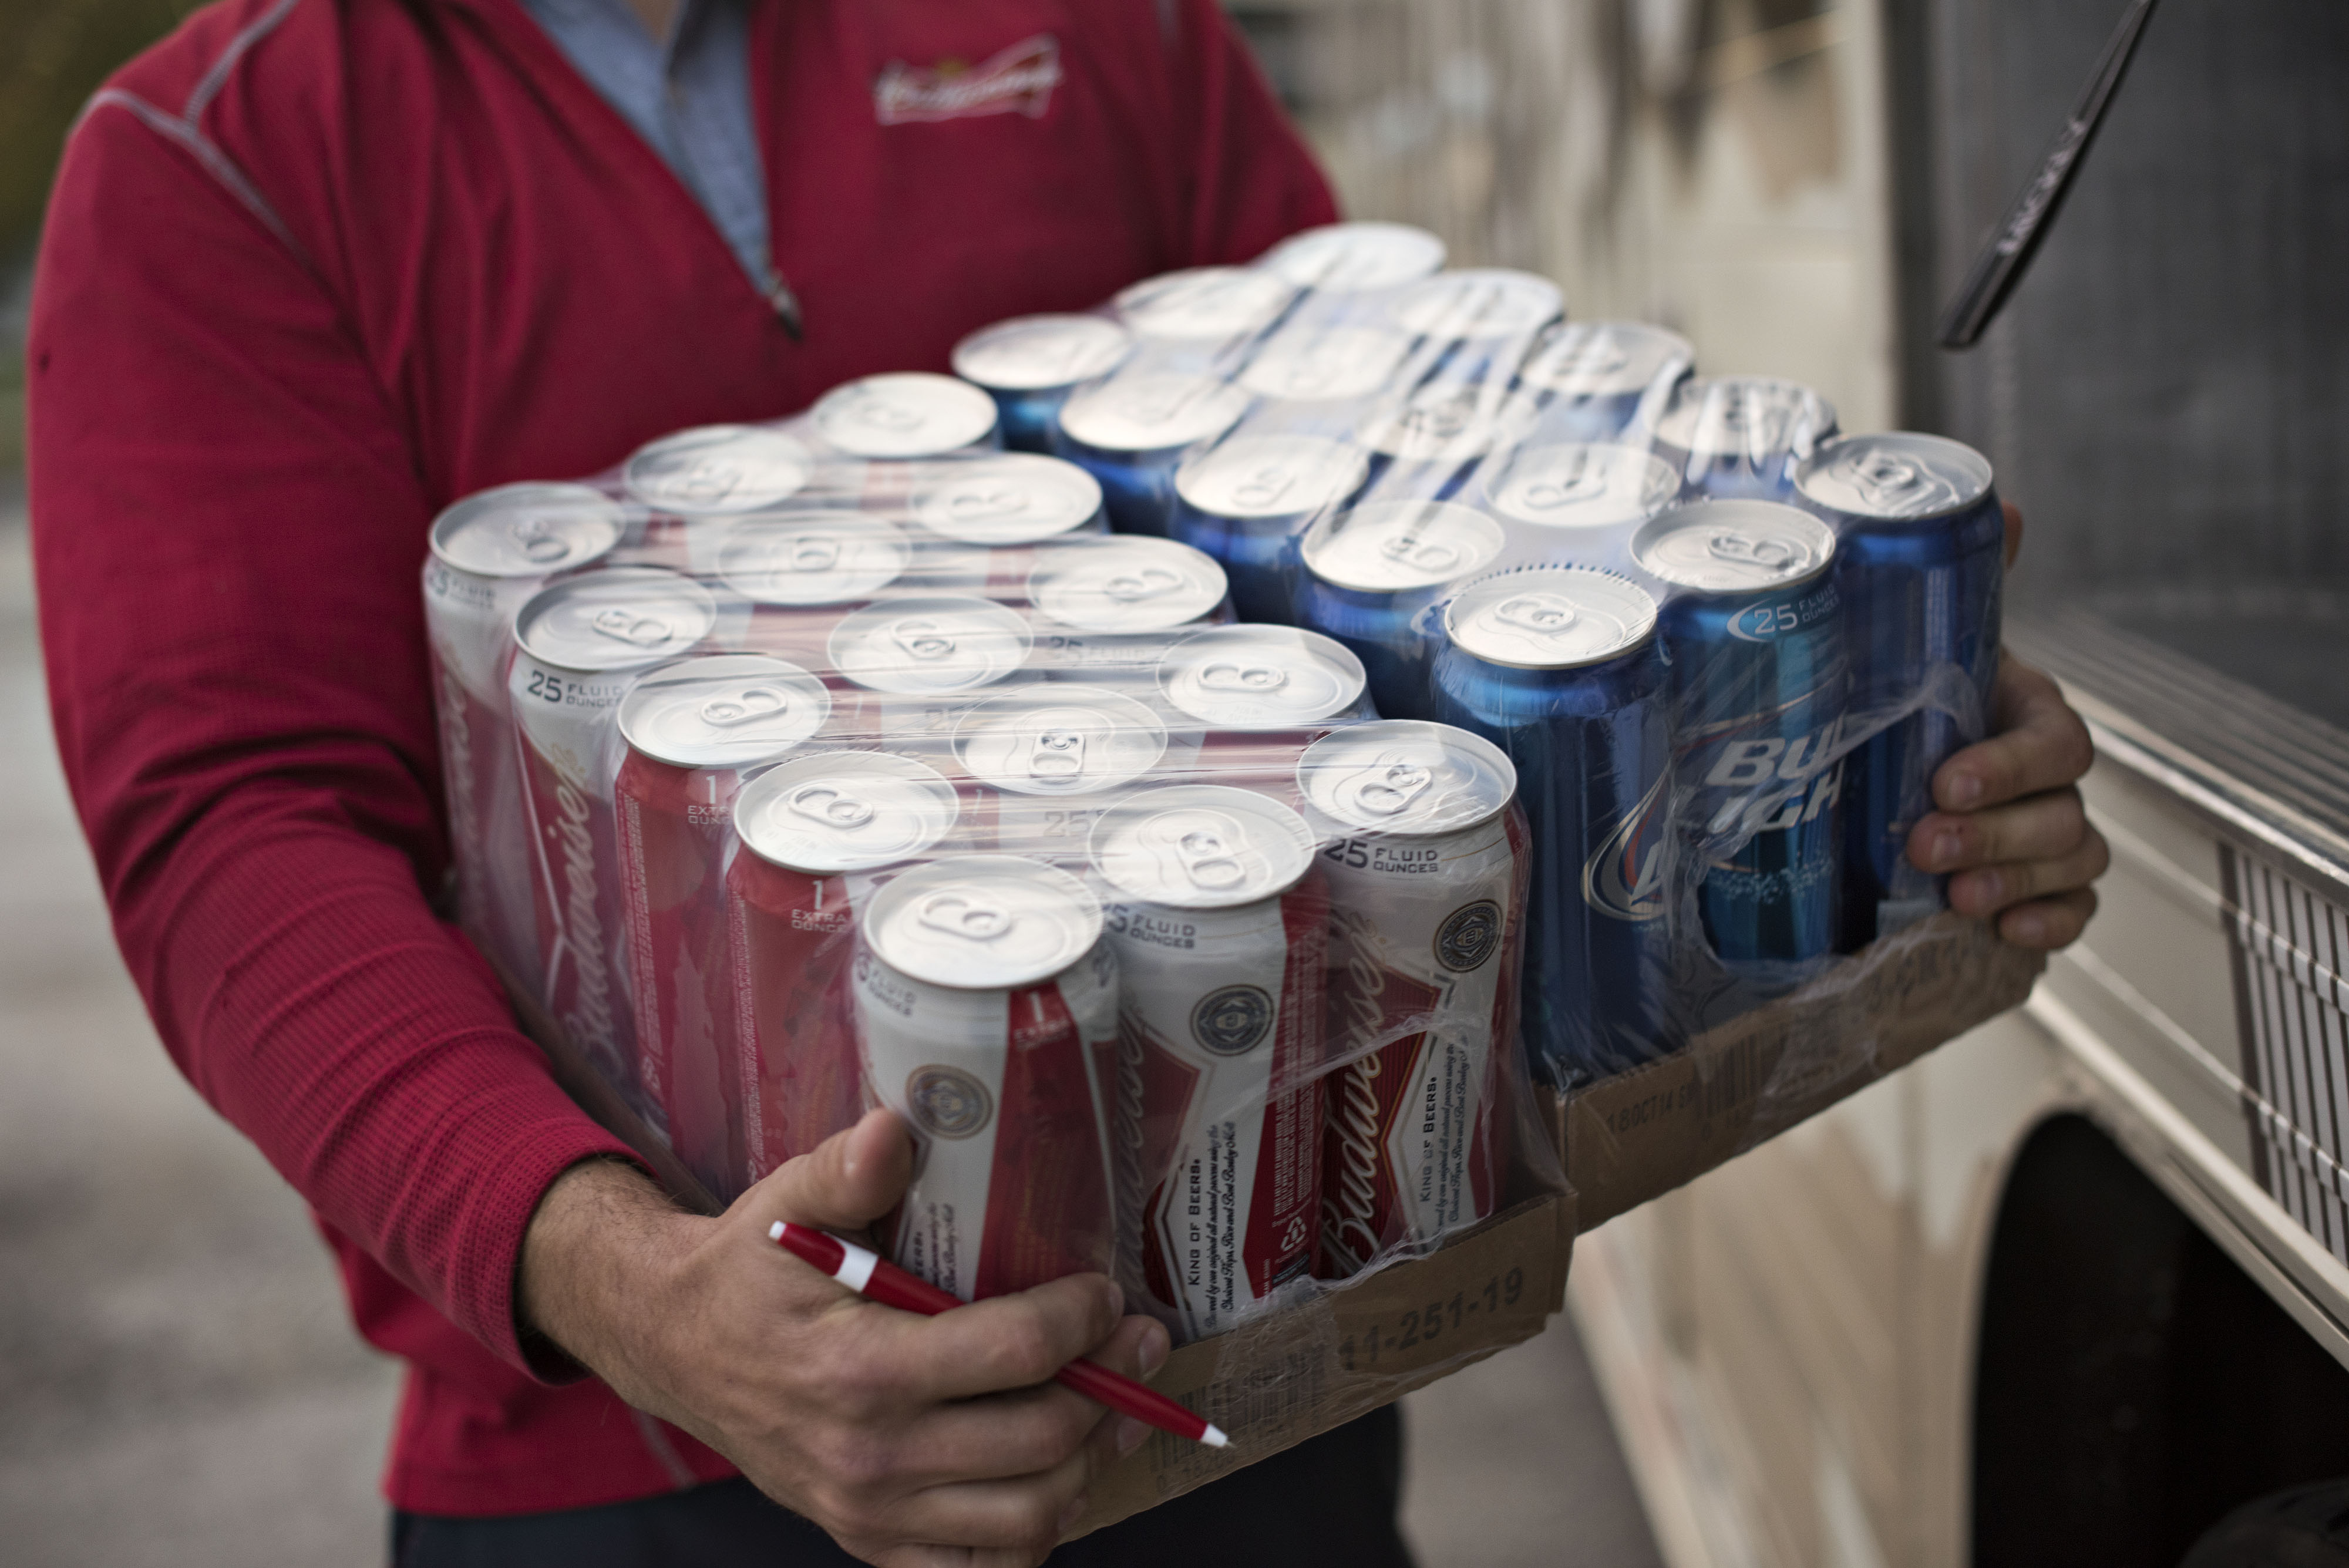 Jeff Allen, a driver for Brewers Distributing Co., delivers Anheuser-Busch beer in Pekin, Illinois, U.S., on Thursday, Oct. 30, 2014.